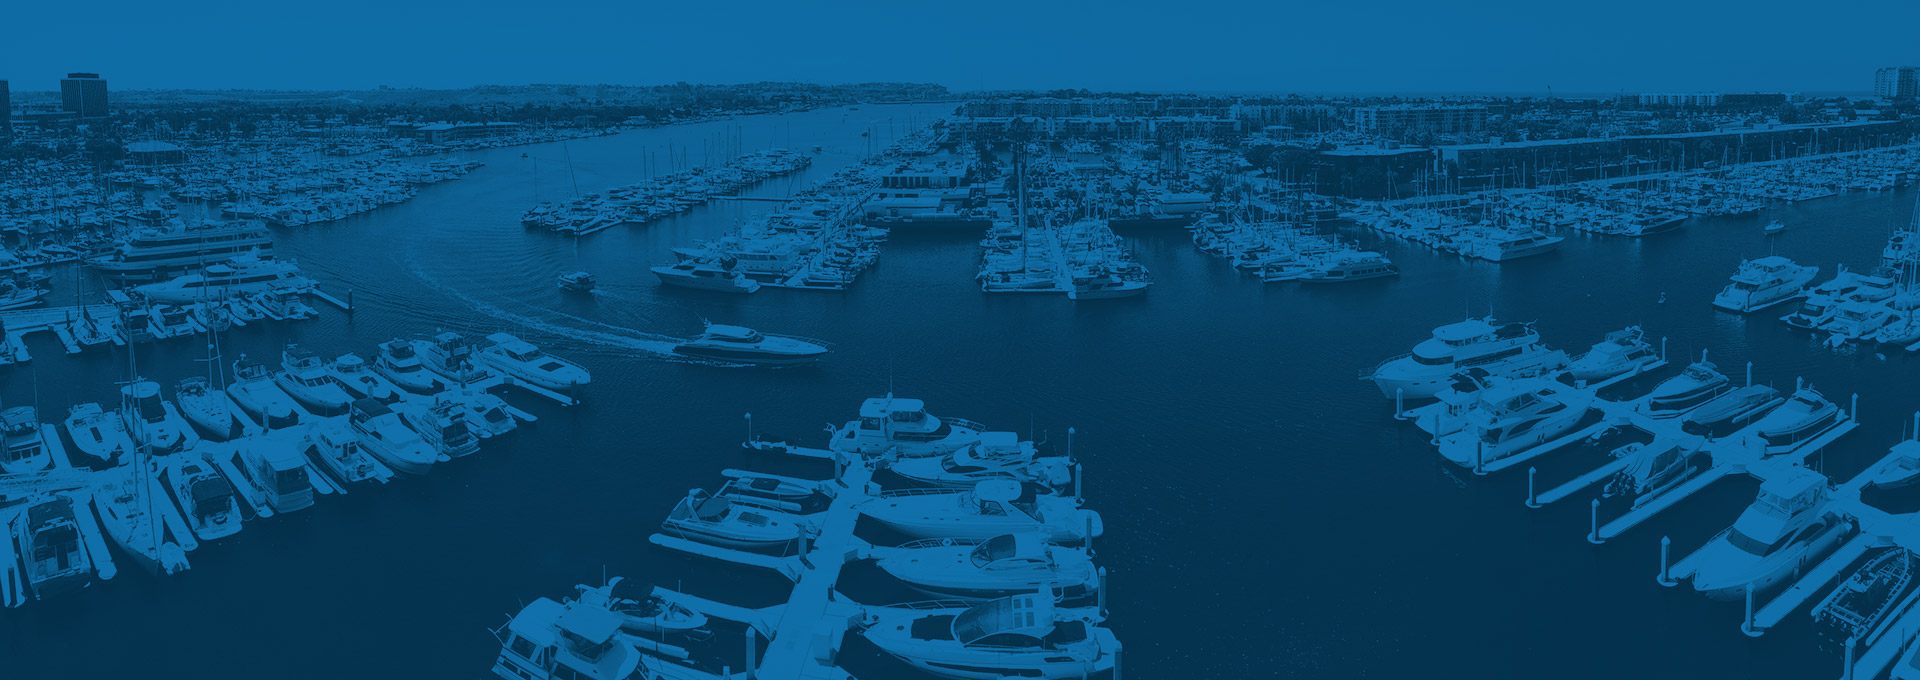 Sustainable Guide for Marina Owners and Operators: Getting Started